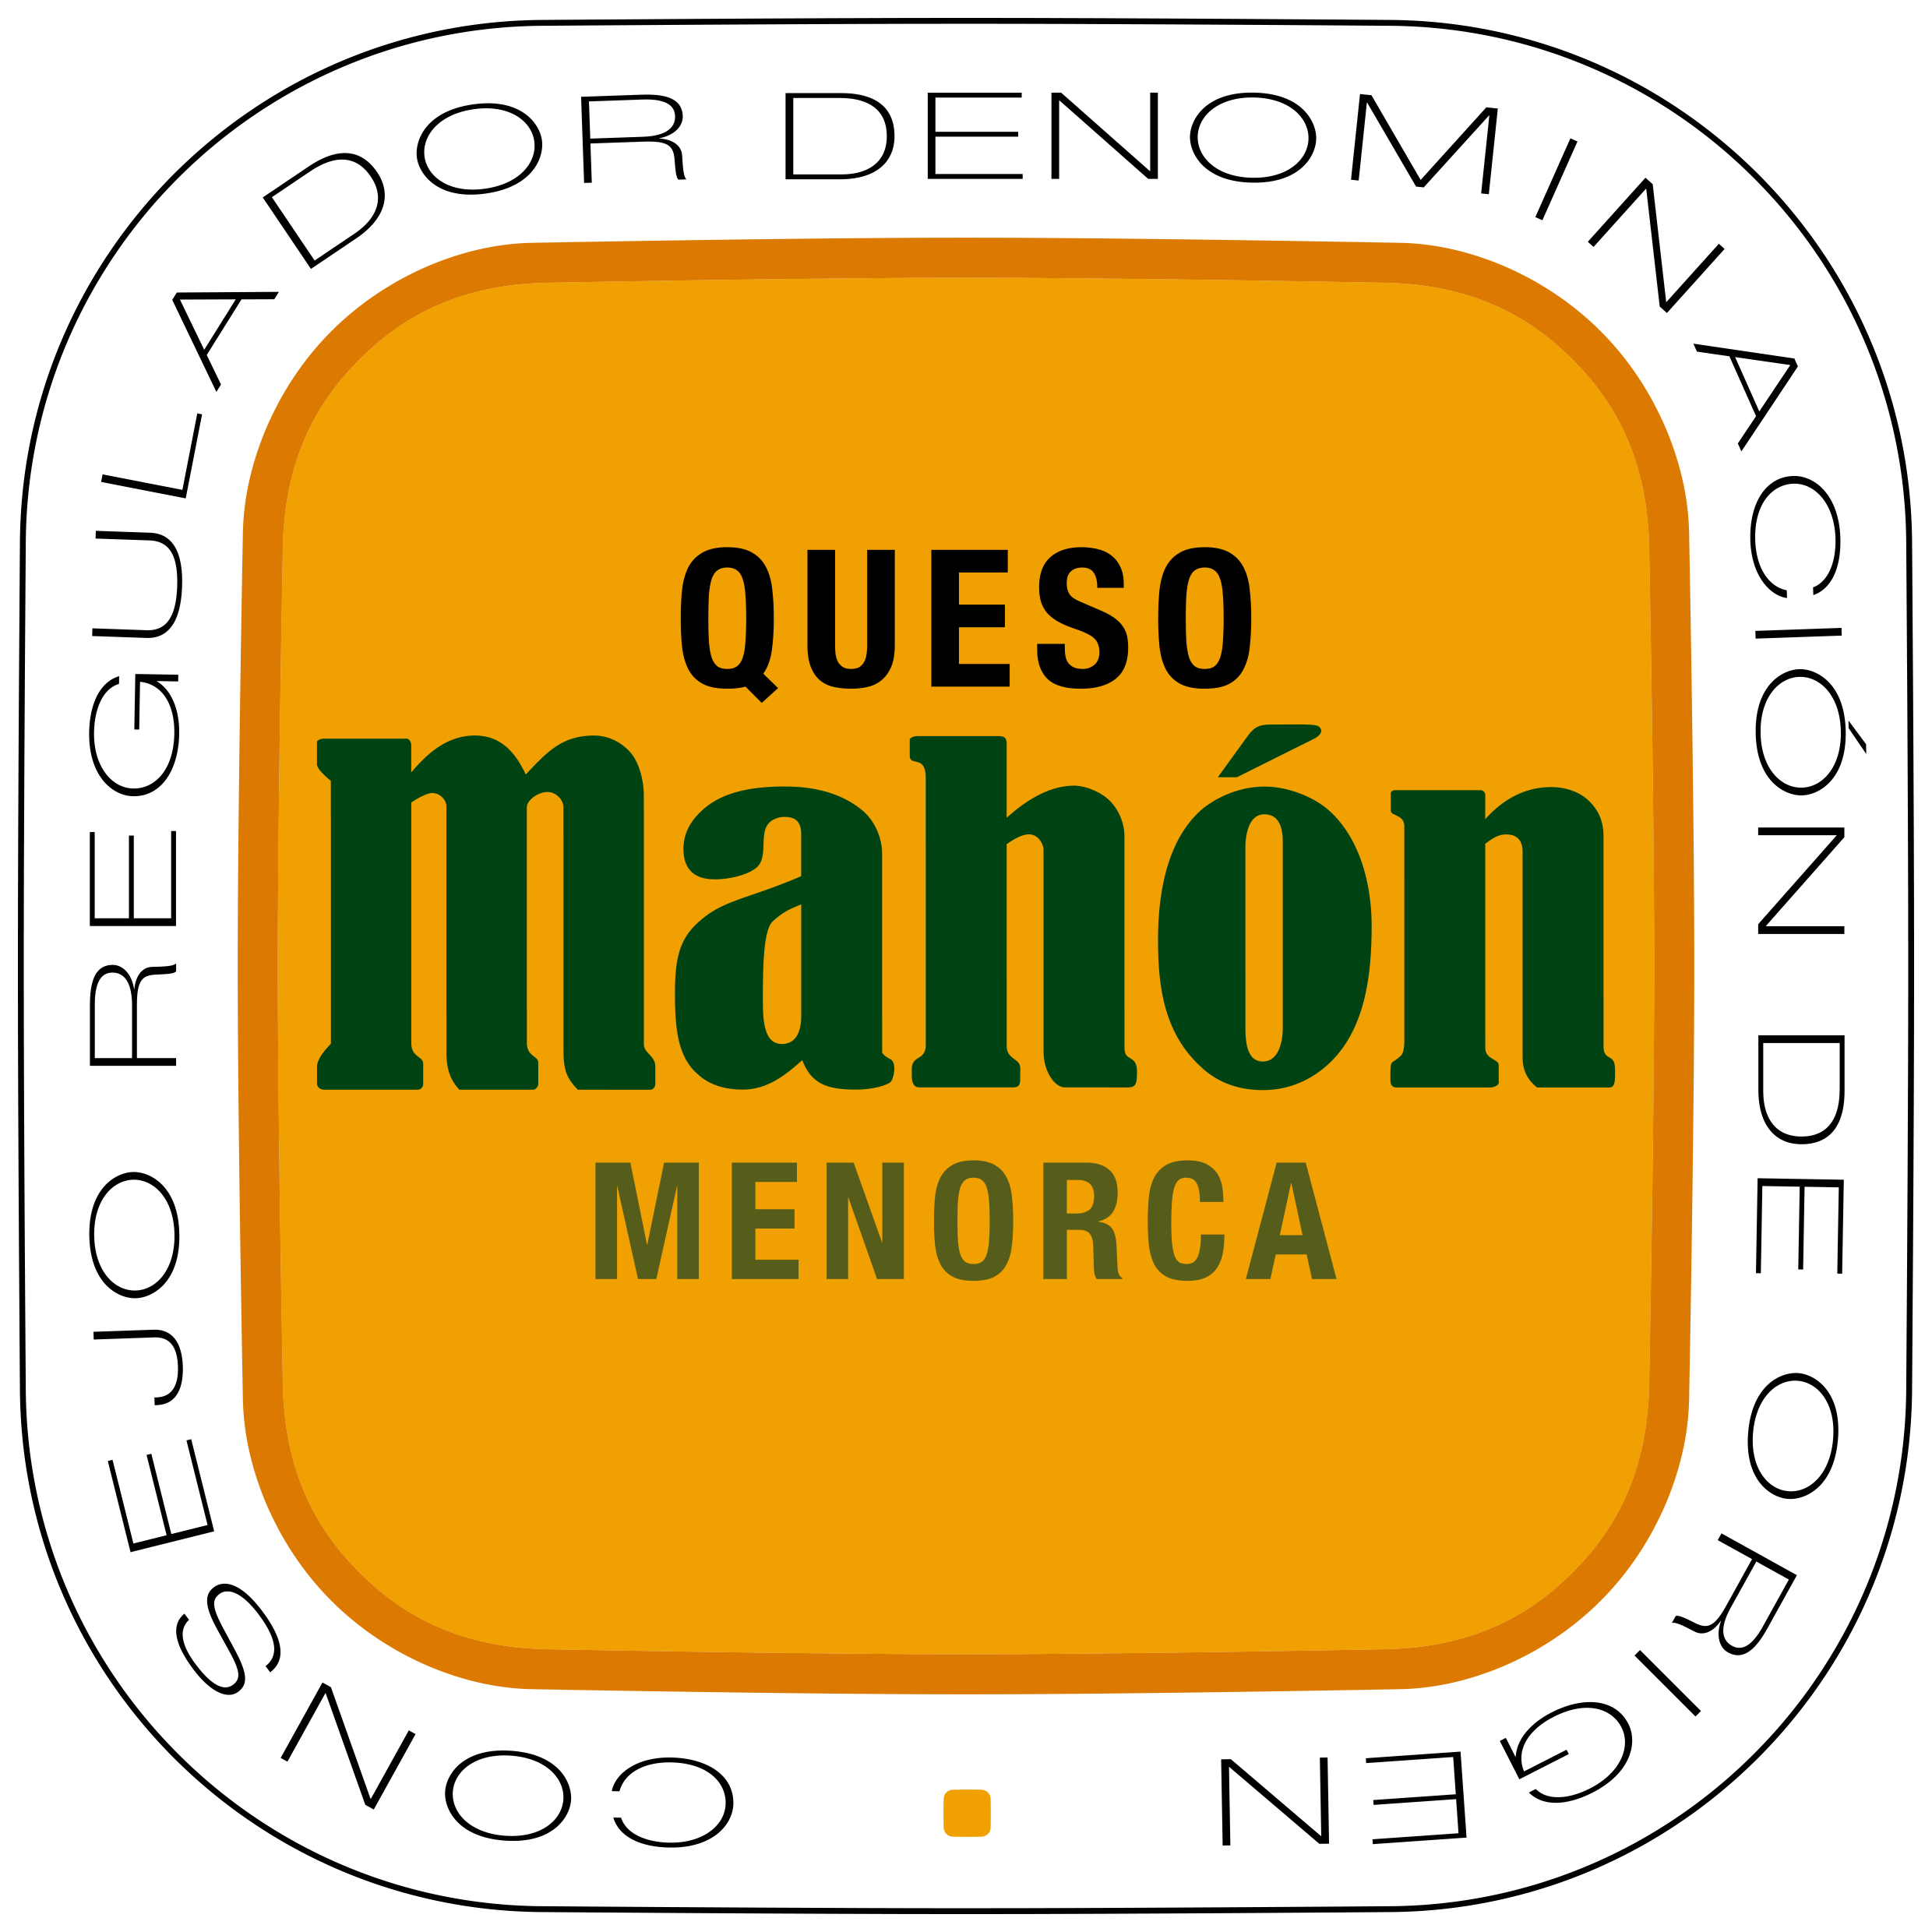 Mahon-Menorca cheese - Balearic Islands - Agrifoodstuffs, designations of origin and Balearic gastronomy